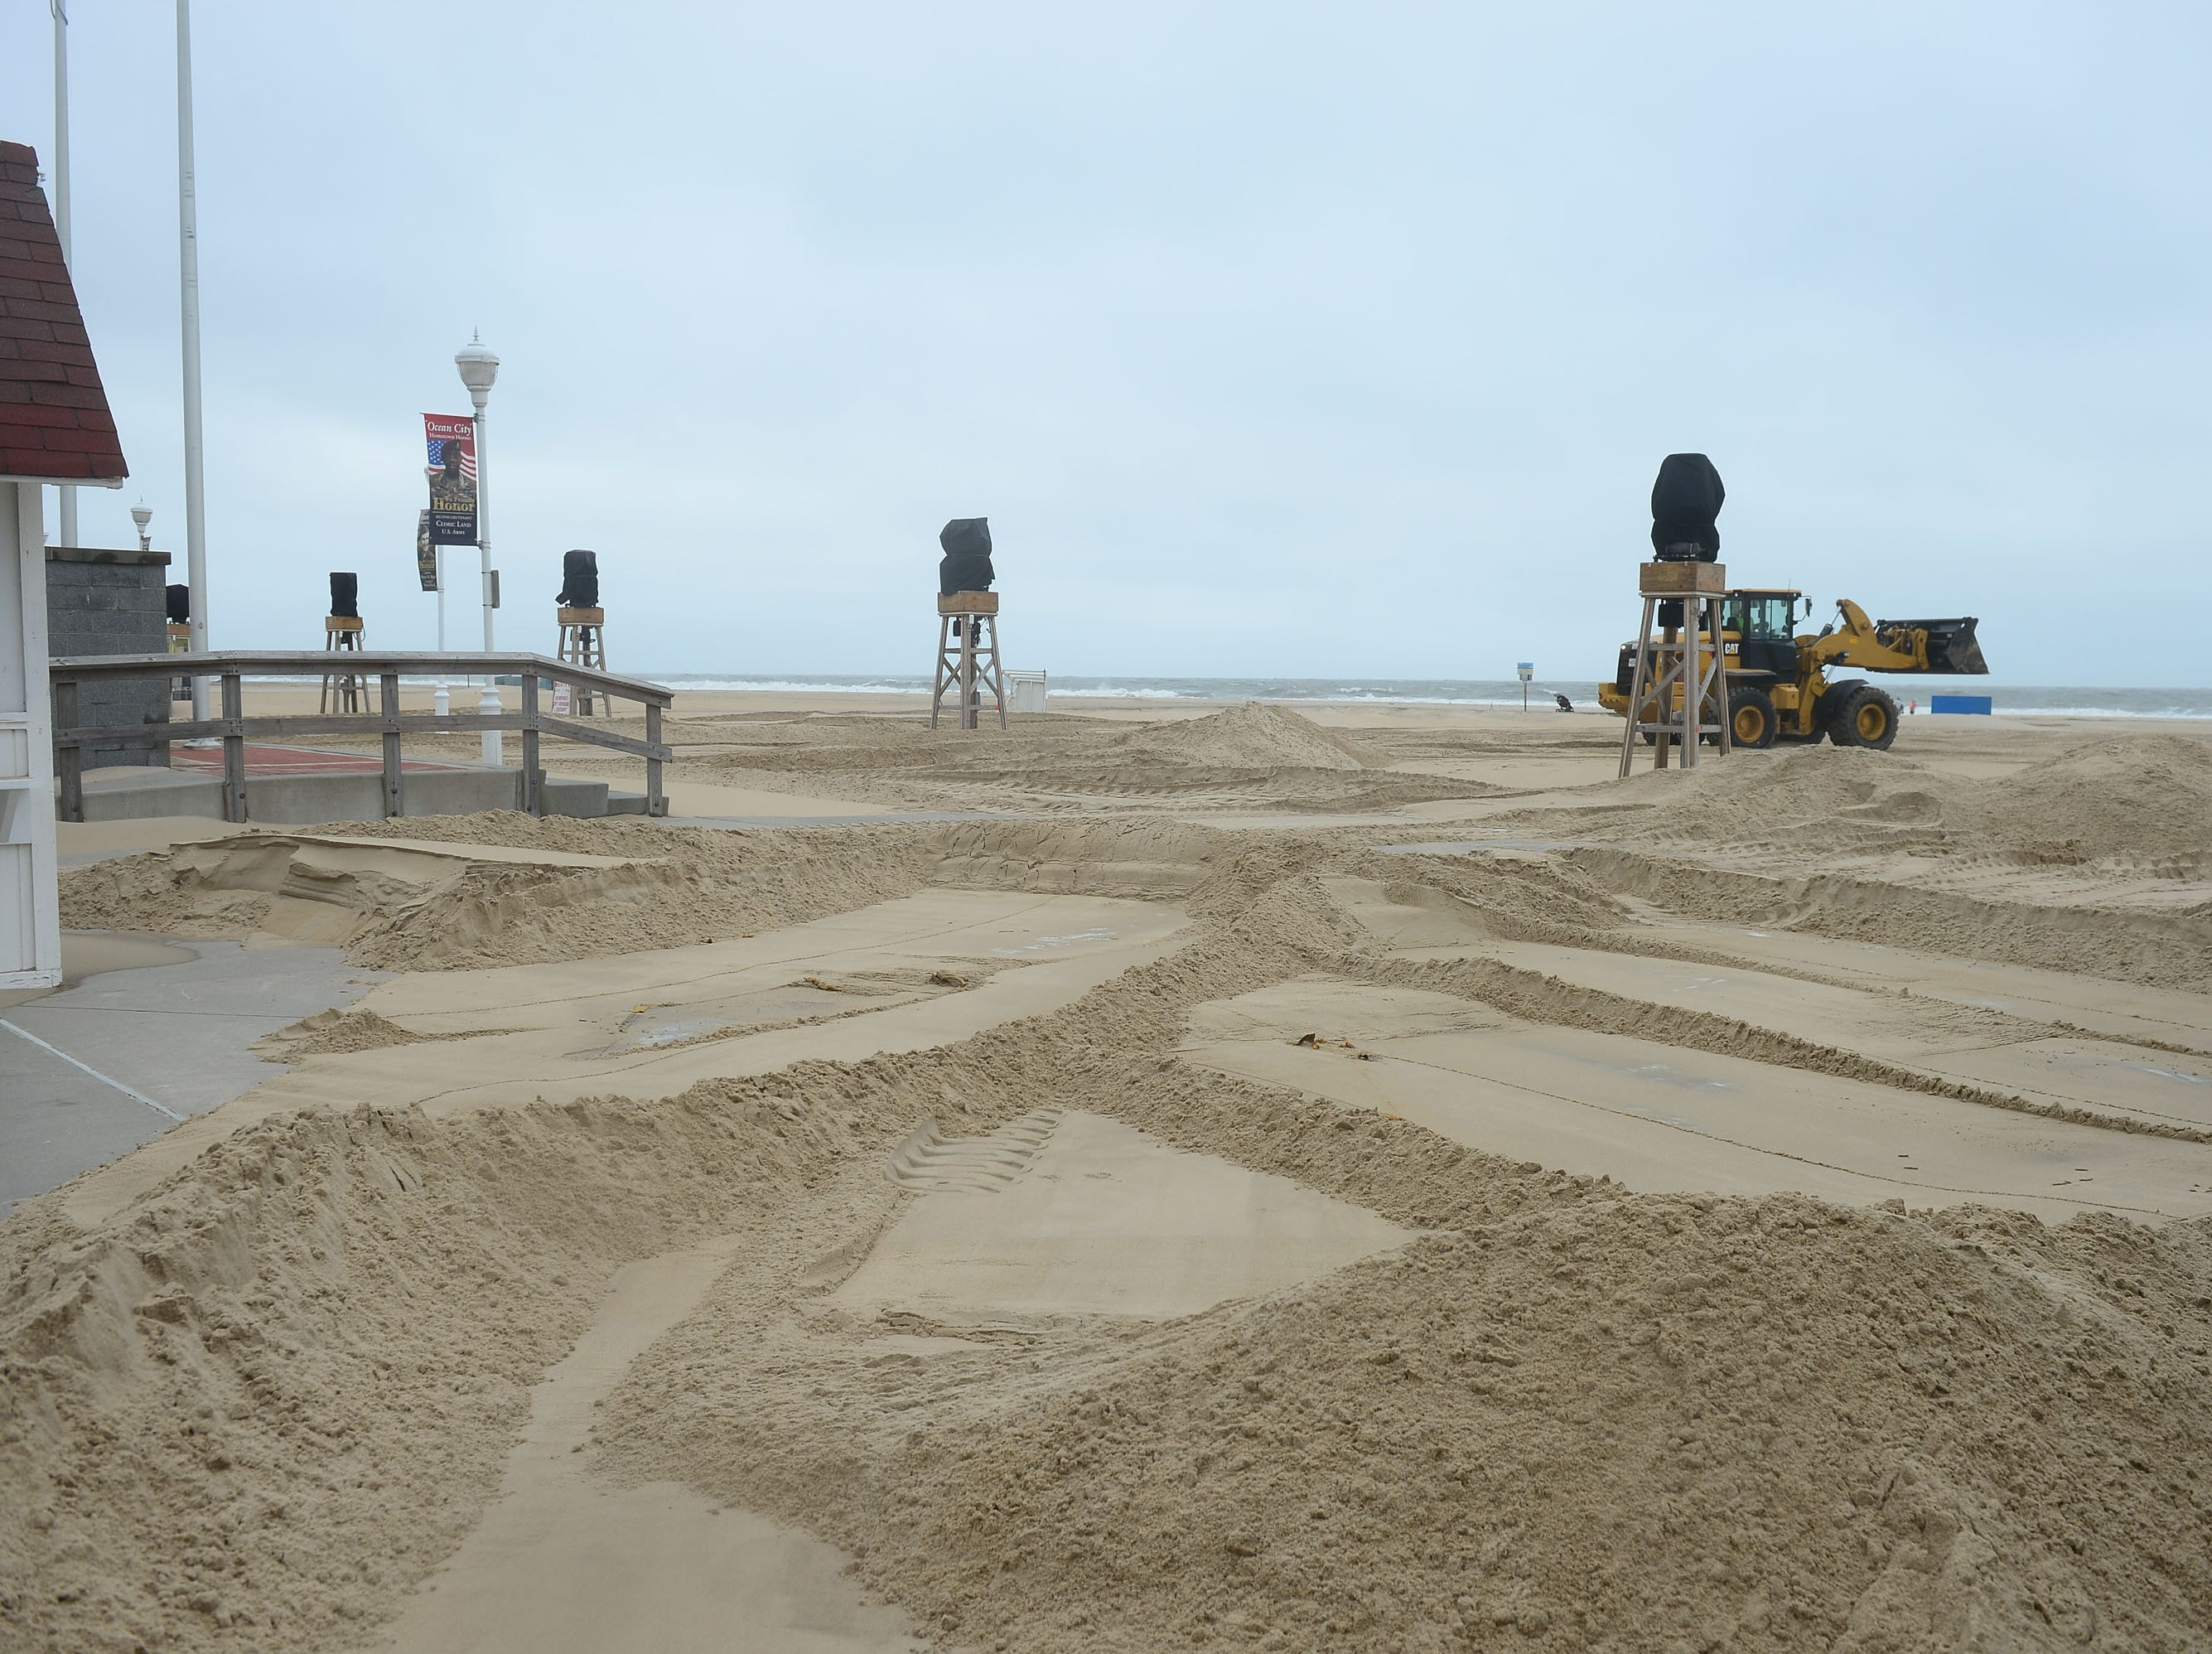 Ocean City works attempt to clear a large amount of sand that has been blown onto the boardwalk and tram routes on Monday, Sept. 10, 2018.